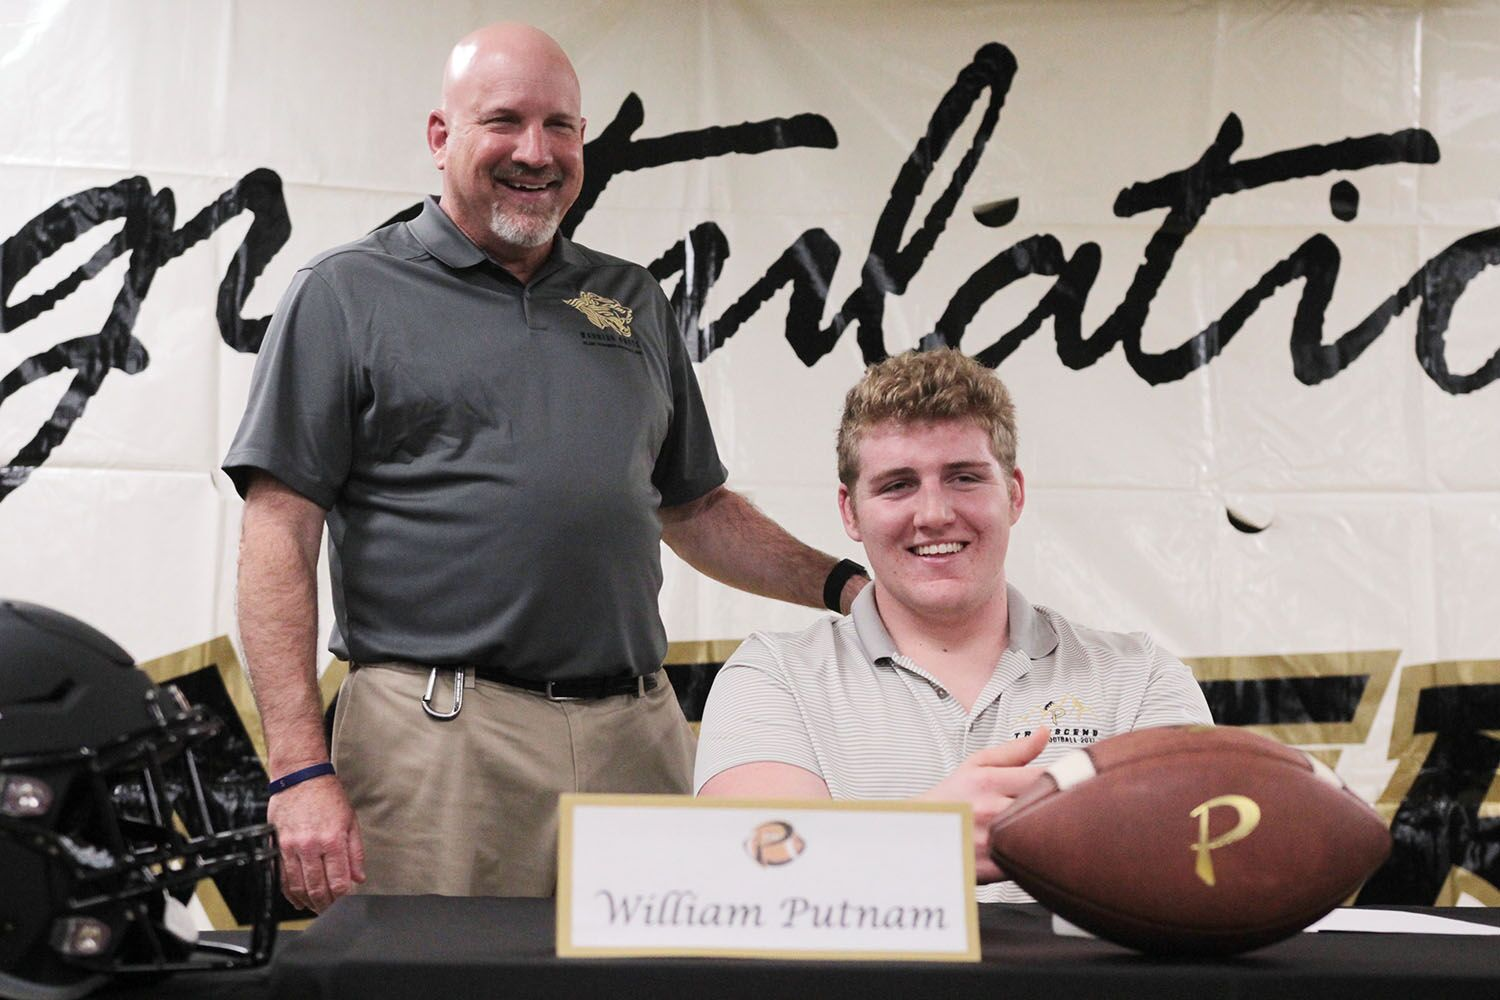 """Calling him a """"once in a lifetime player,"""" head coach Robert Weiner introduces senior offensive lineman William Putnam Dec. 20 in the field house. Putnam announced he had signed with Clemson University by pulling out a Clemson hat and placing it on his head."""